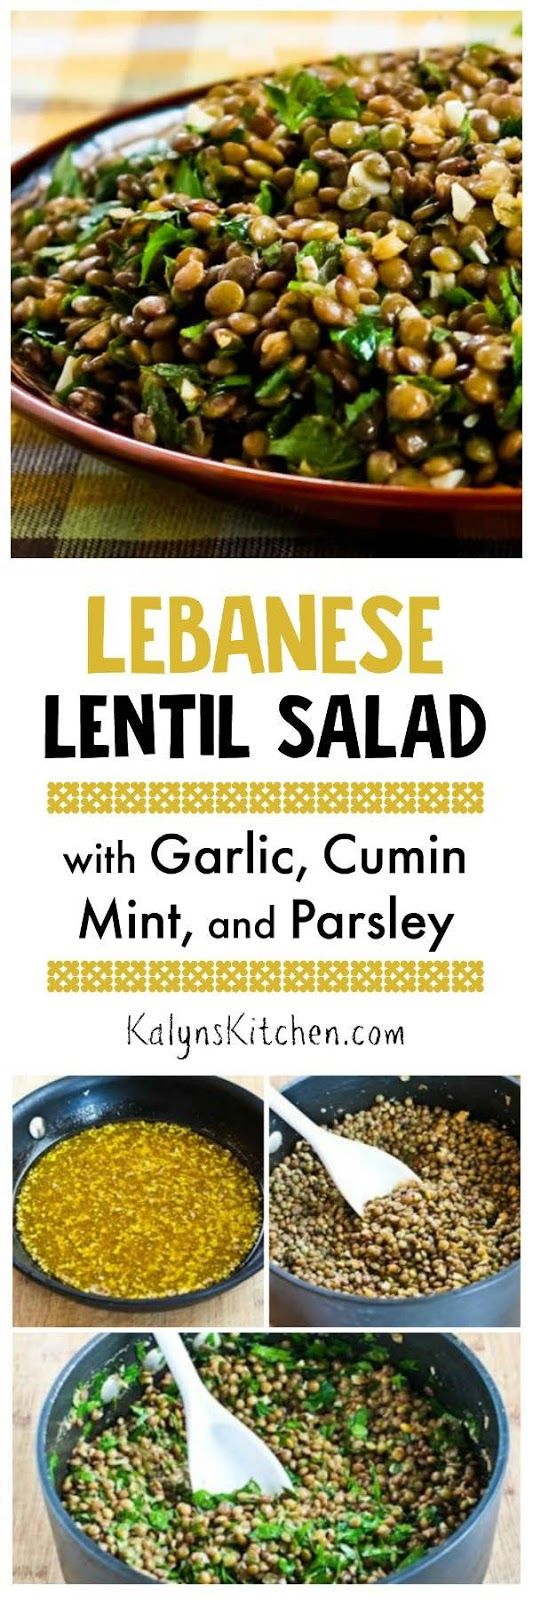 If you've got fresh herbs in the garden, this Lebanese Lentil Salad with Garlic, Cumin, Mint, and Parsley is a Meatless Monday salad that people will devour!